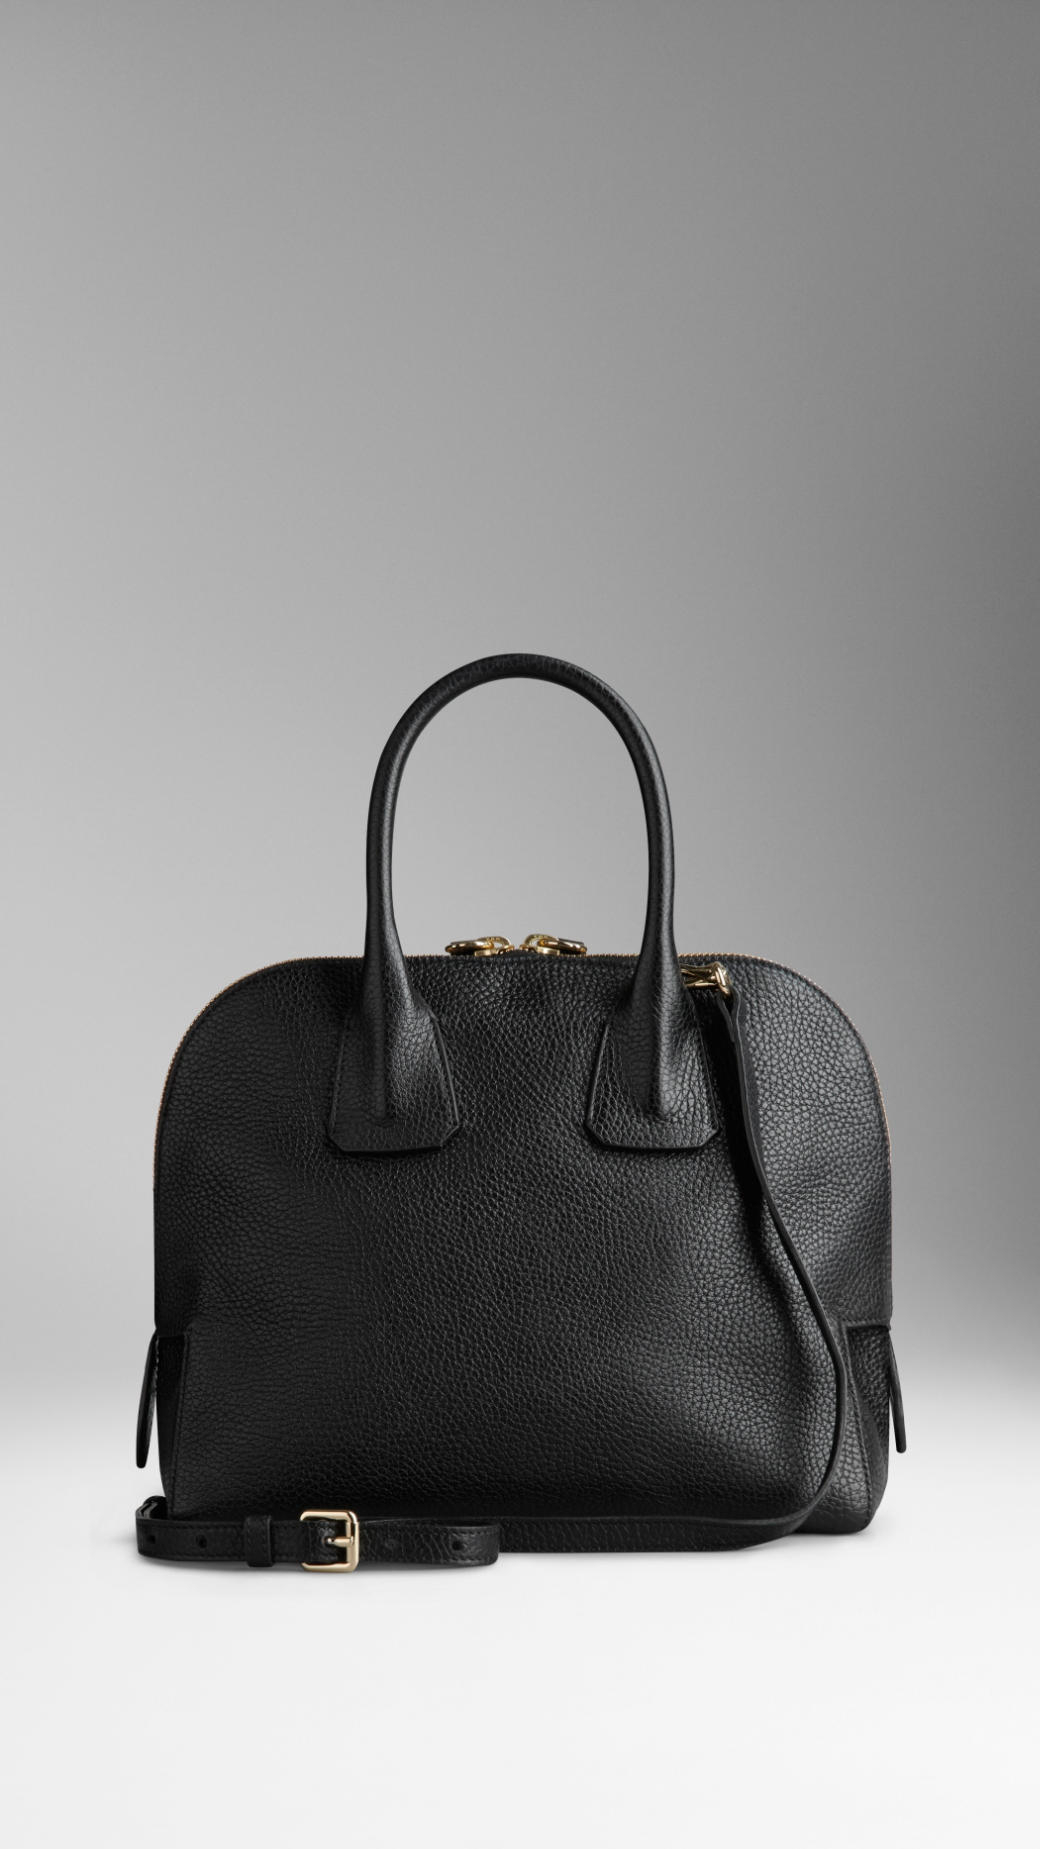 6cdd30ea0459 Lyst - Burberry Small Grainy Leather Bowling Bag in Black